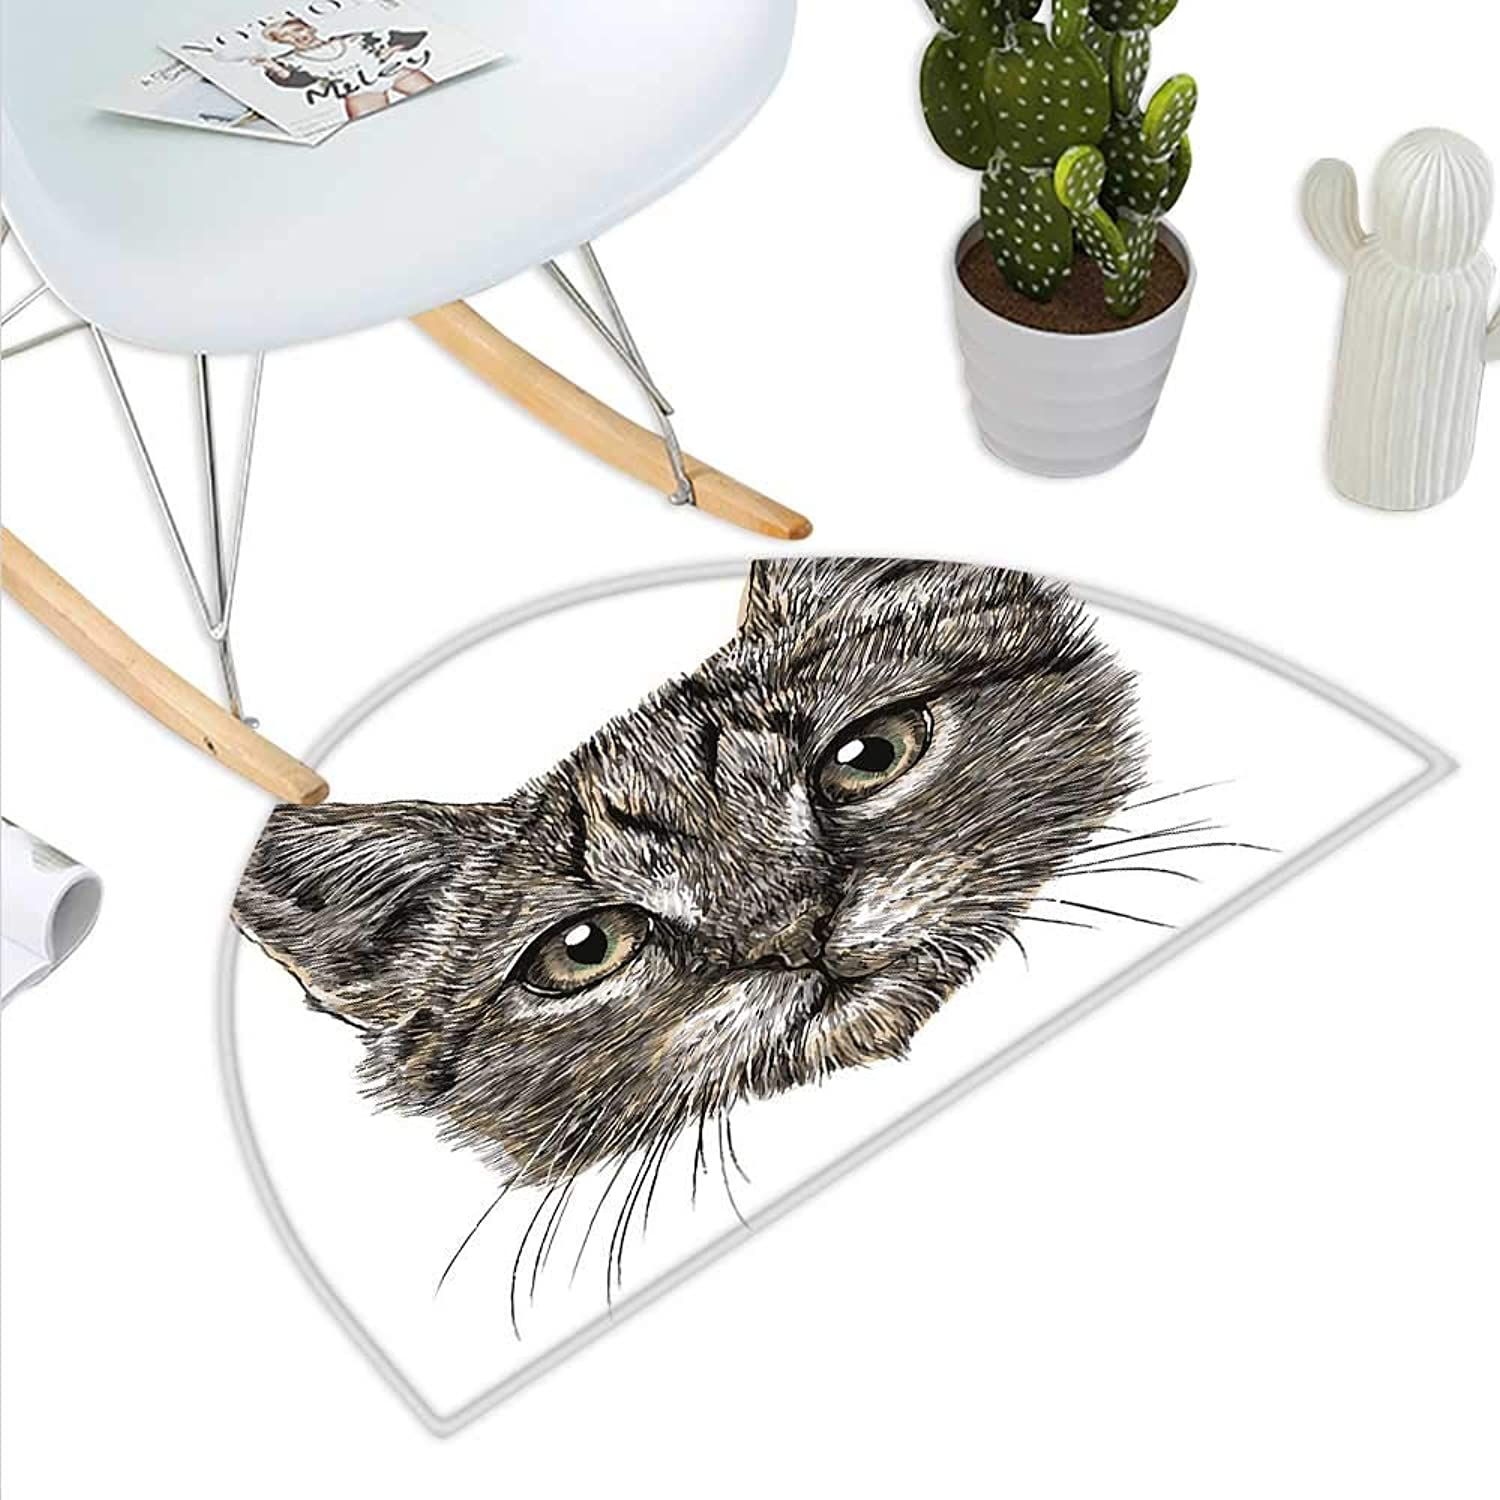 Animal Semicircle Doormat Cute Little Chubby Cat Head Looking Innocently with Long Whiskers Sketchy Like Artwork Halfmoon doormats H 43.3  xD 64.9  Grey